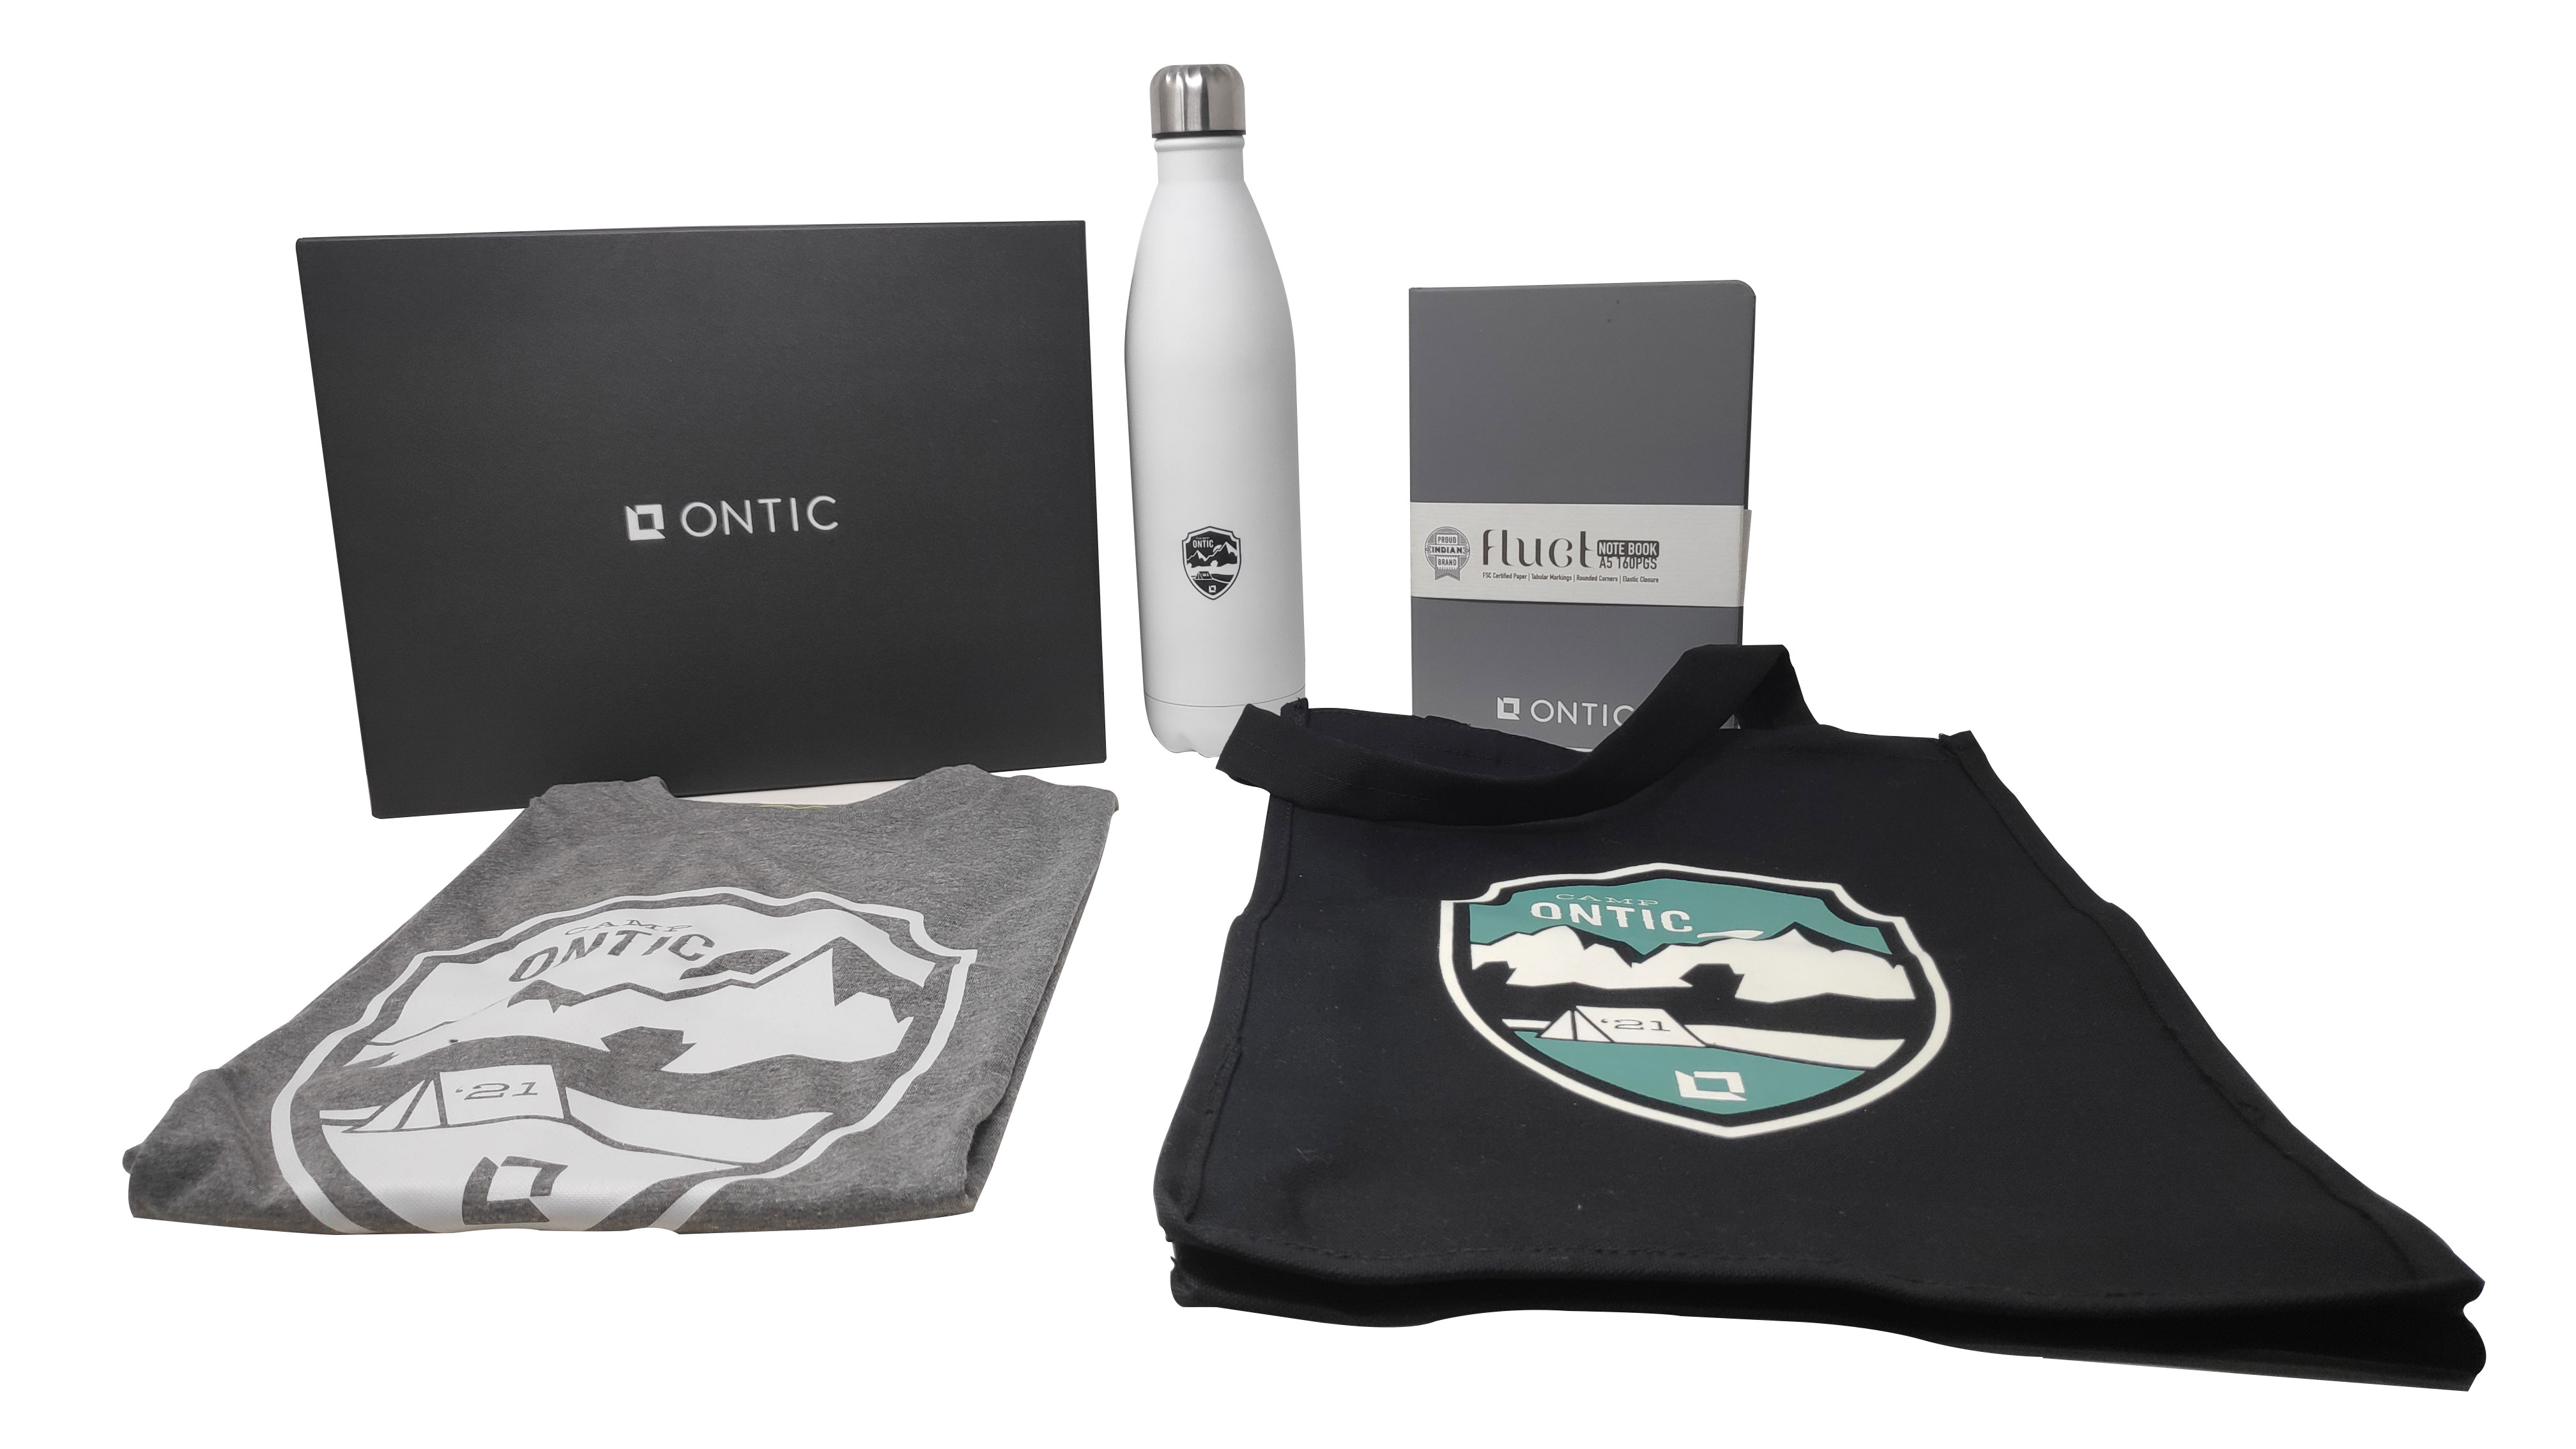 Onboarding Kit for ONTIC